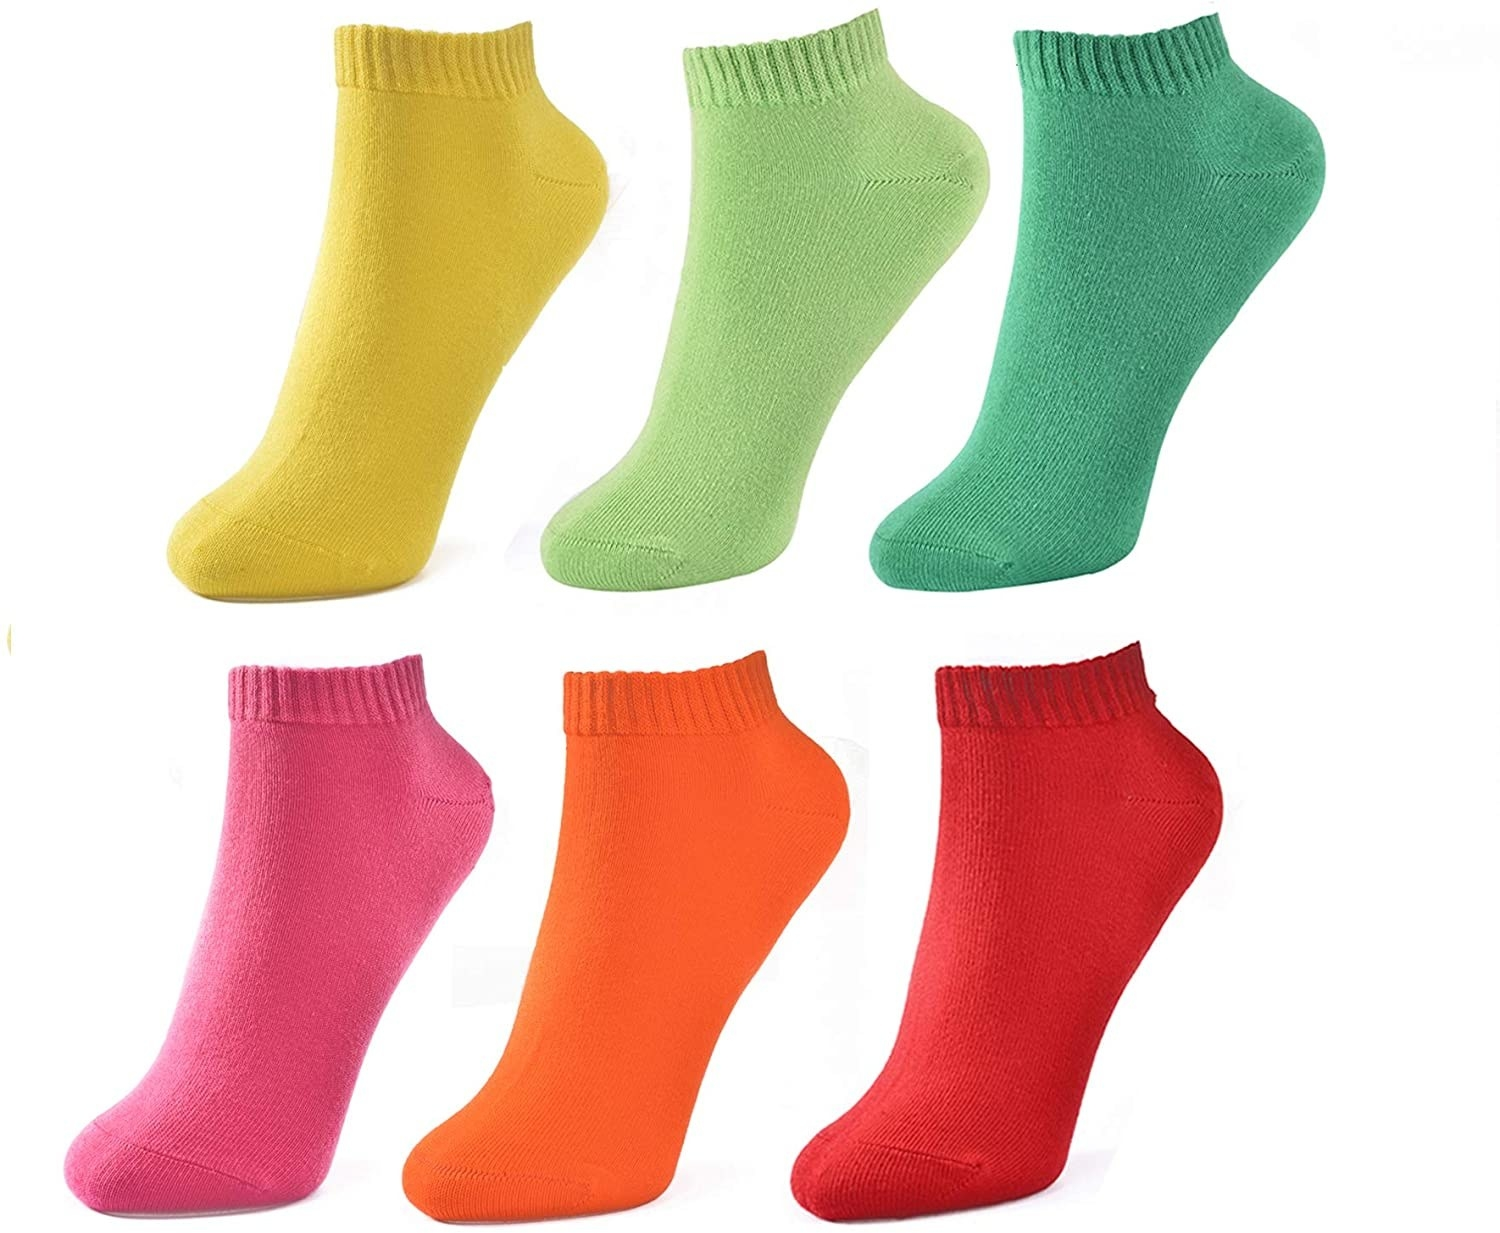 socks in yellow, lime green, dark green, hot pink, orange, and red